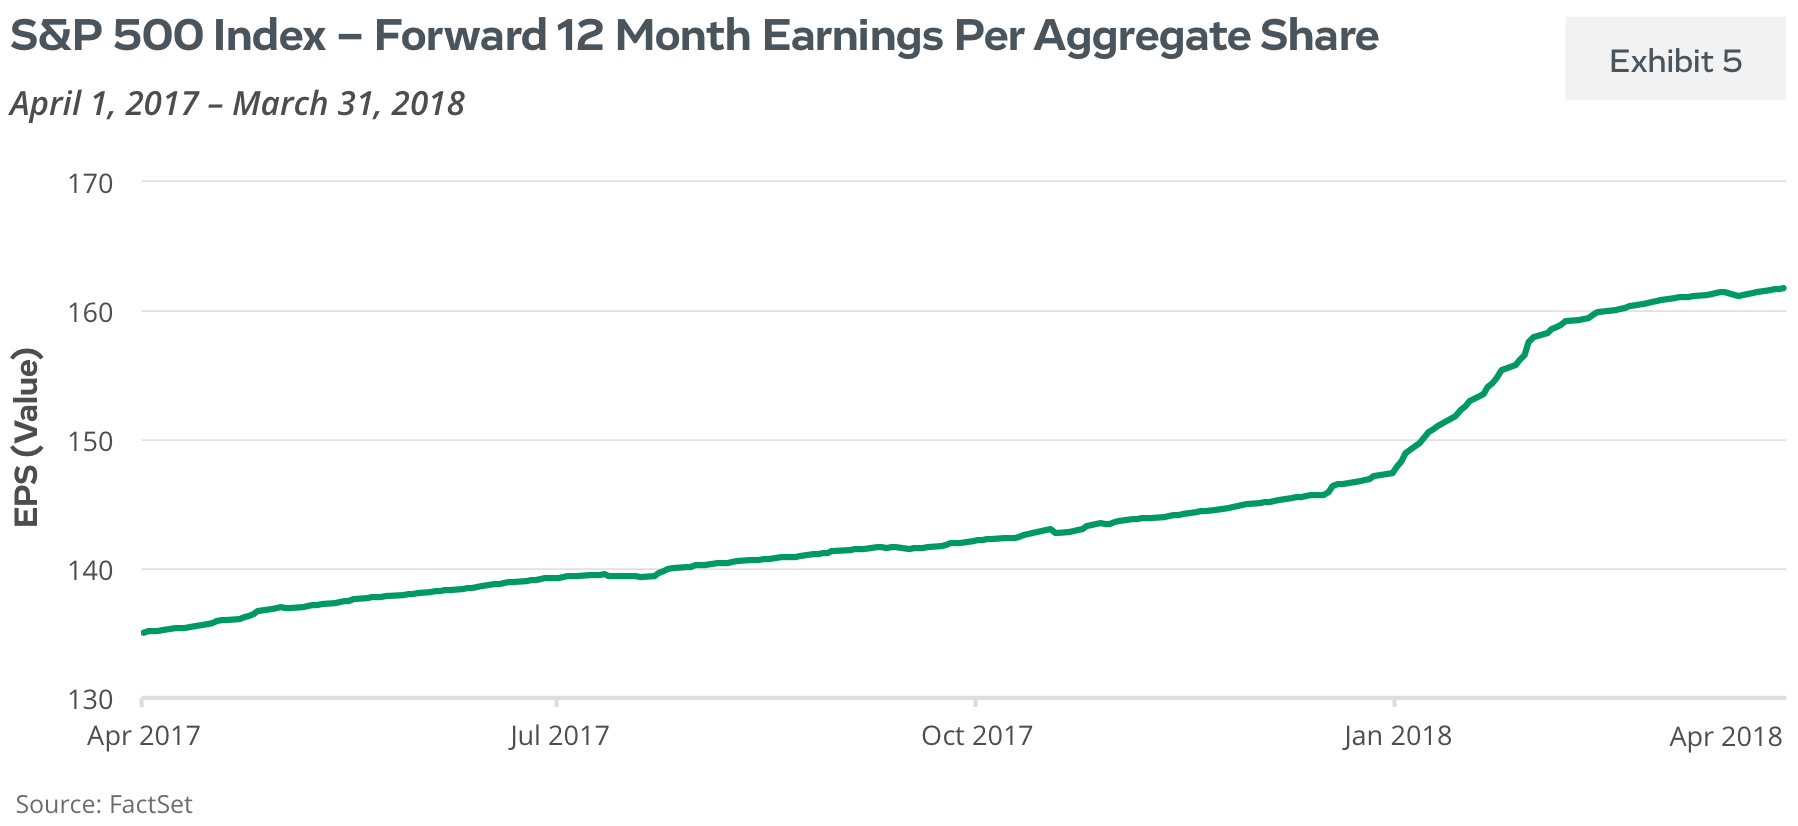 S&P 500 Index: Forward 12 Month Earnings Per Aggregate Share